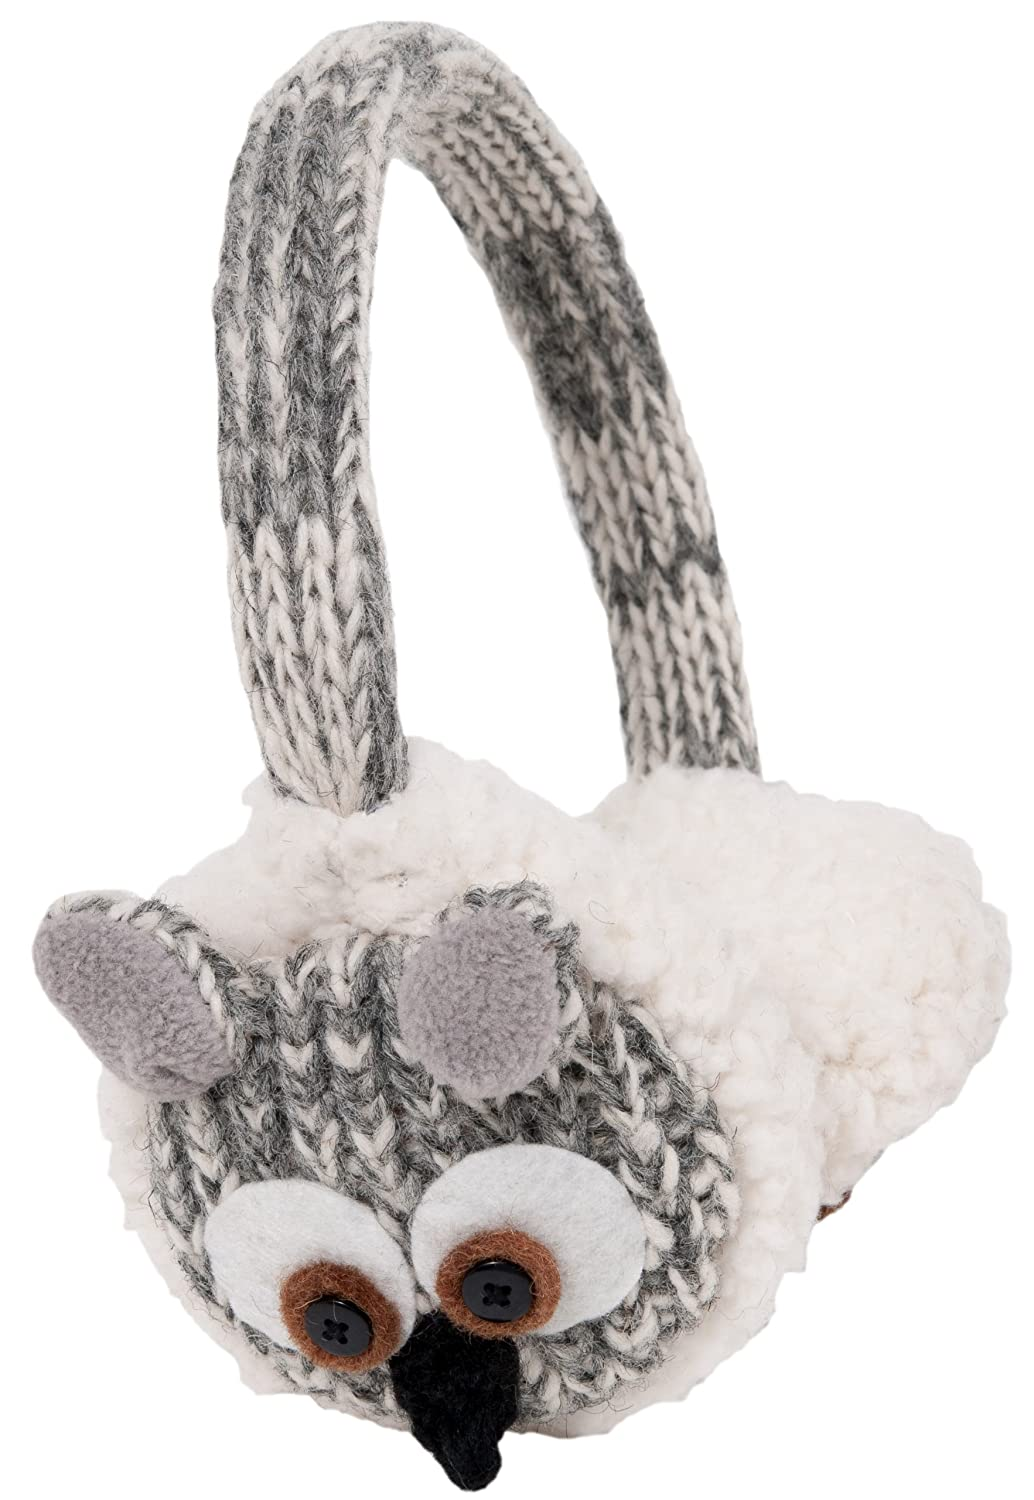 Nirvanna Designs EAOWL Owl Earmuffs, Grey Nirvanna Designs Inc